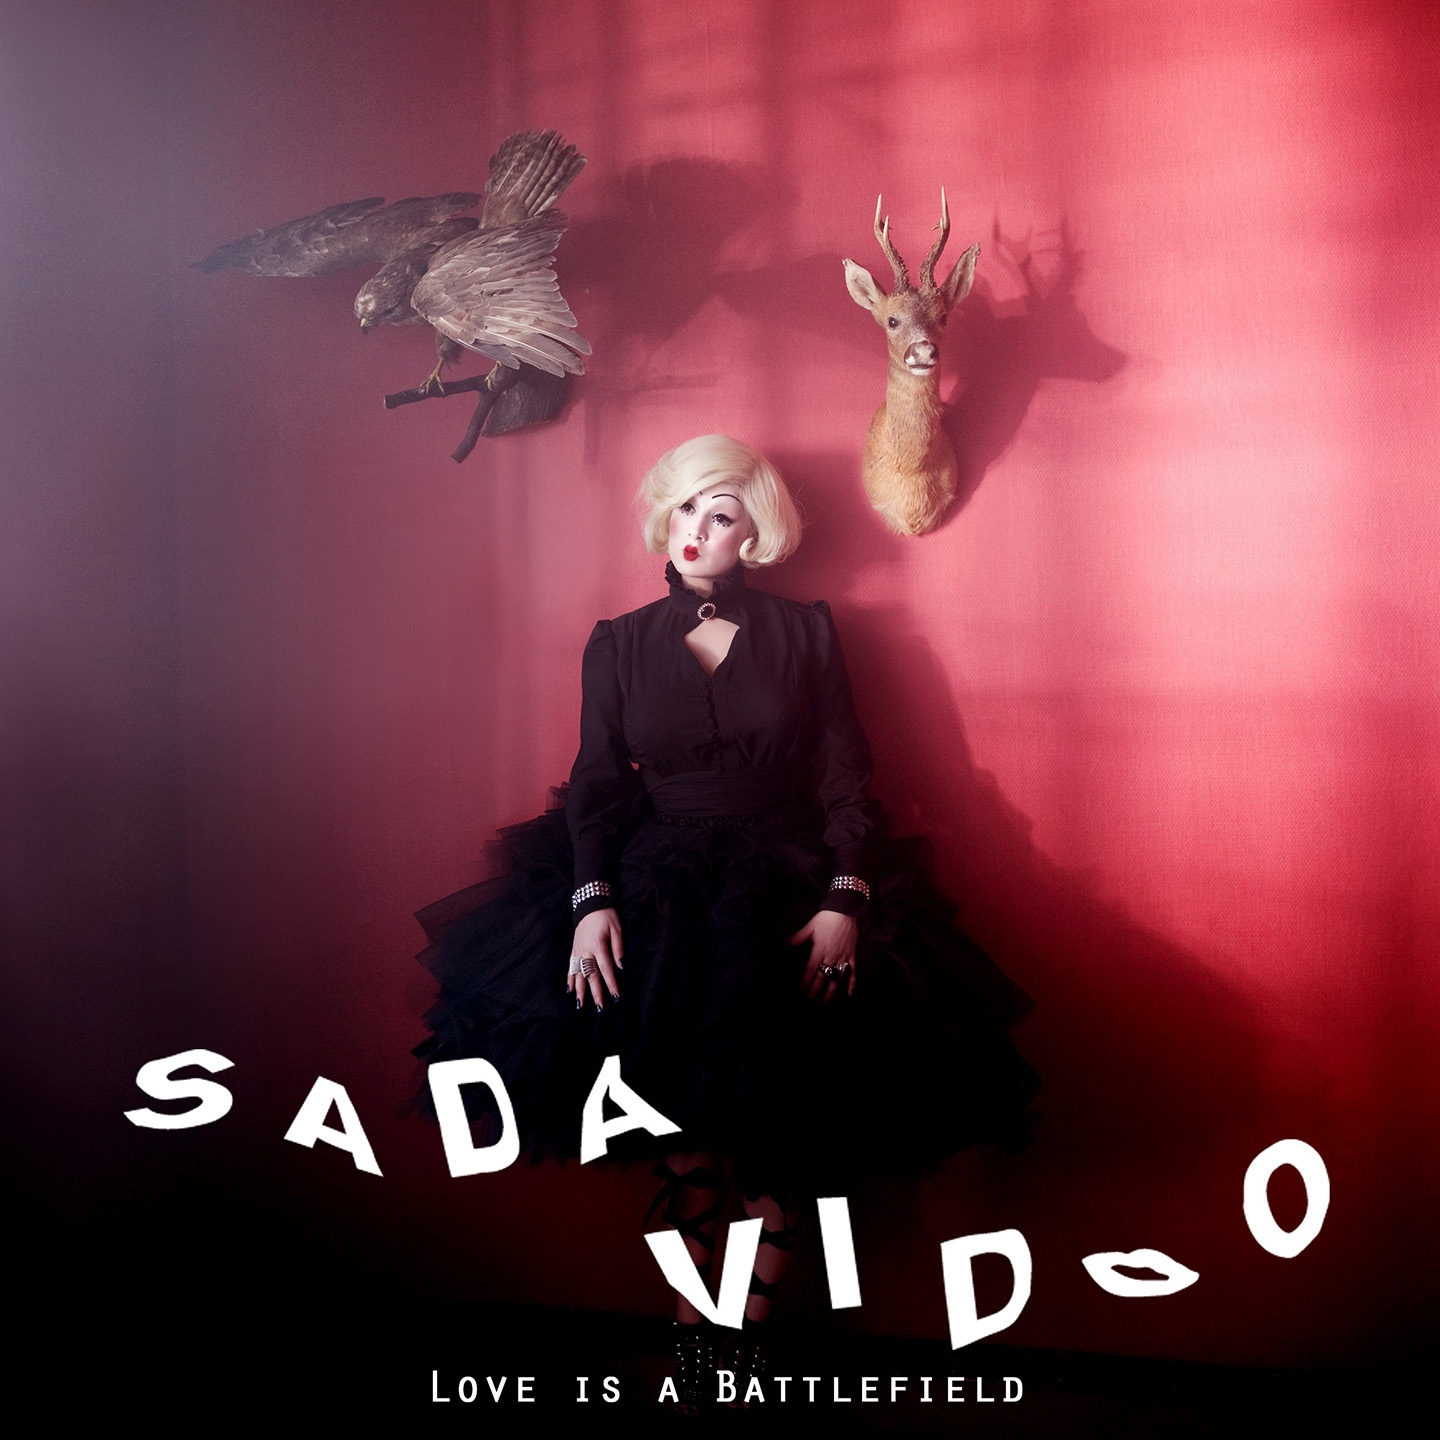 Sada Vidoo – 'Love Is a Battlefield' (Single)